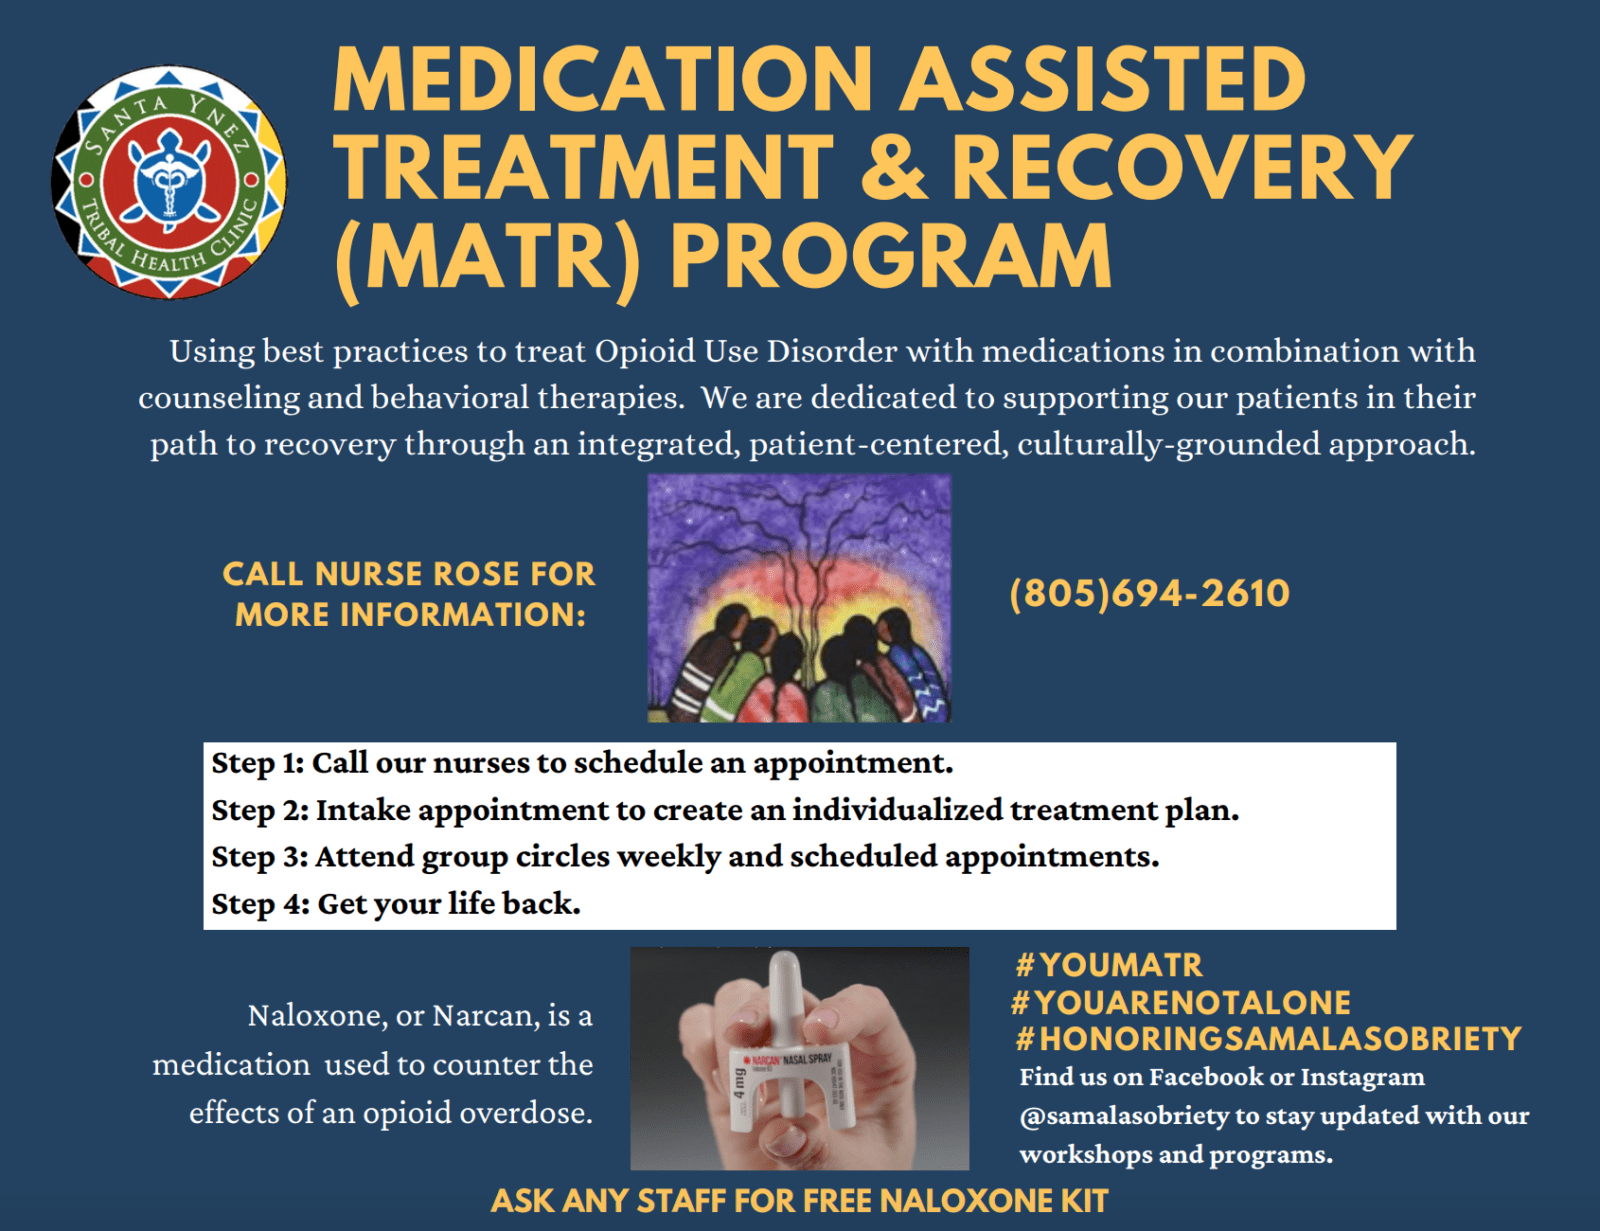 Medication-Assisted Treatment & Recovery Program (MATR)